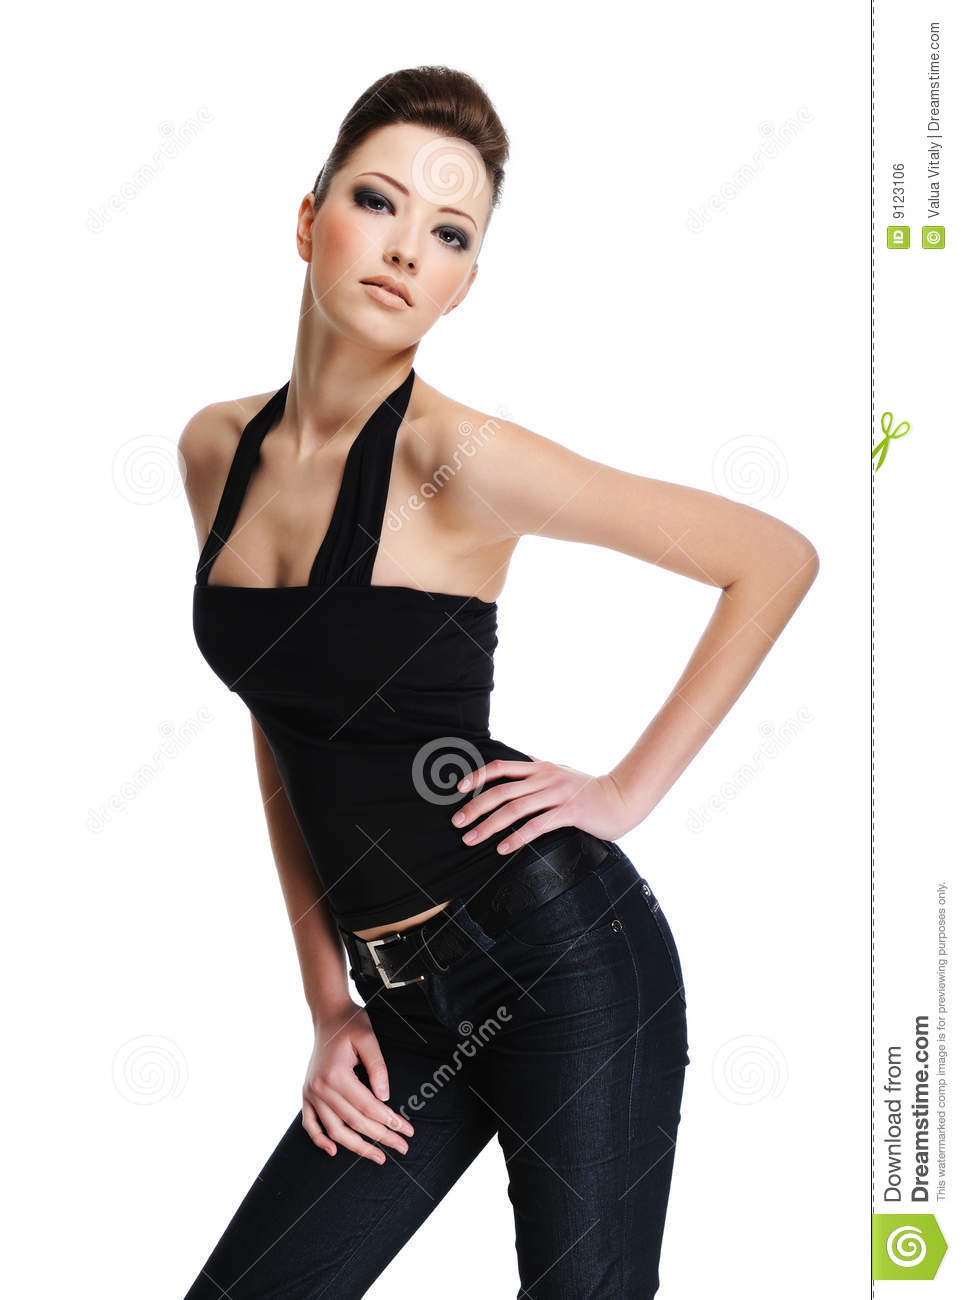 Https Www Dreamstime Com Royalty Free Stock Image Fashion Model Pose Image9123106